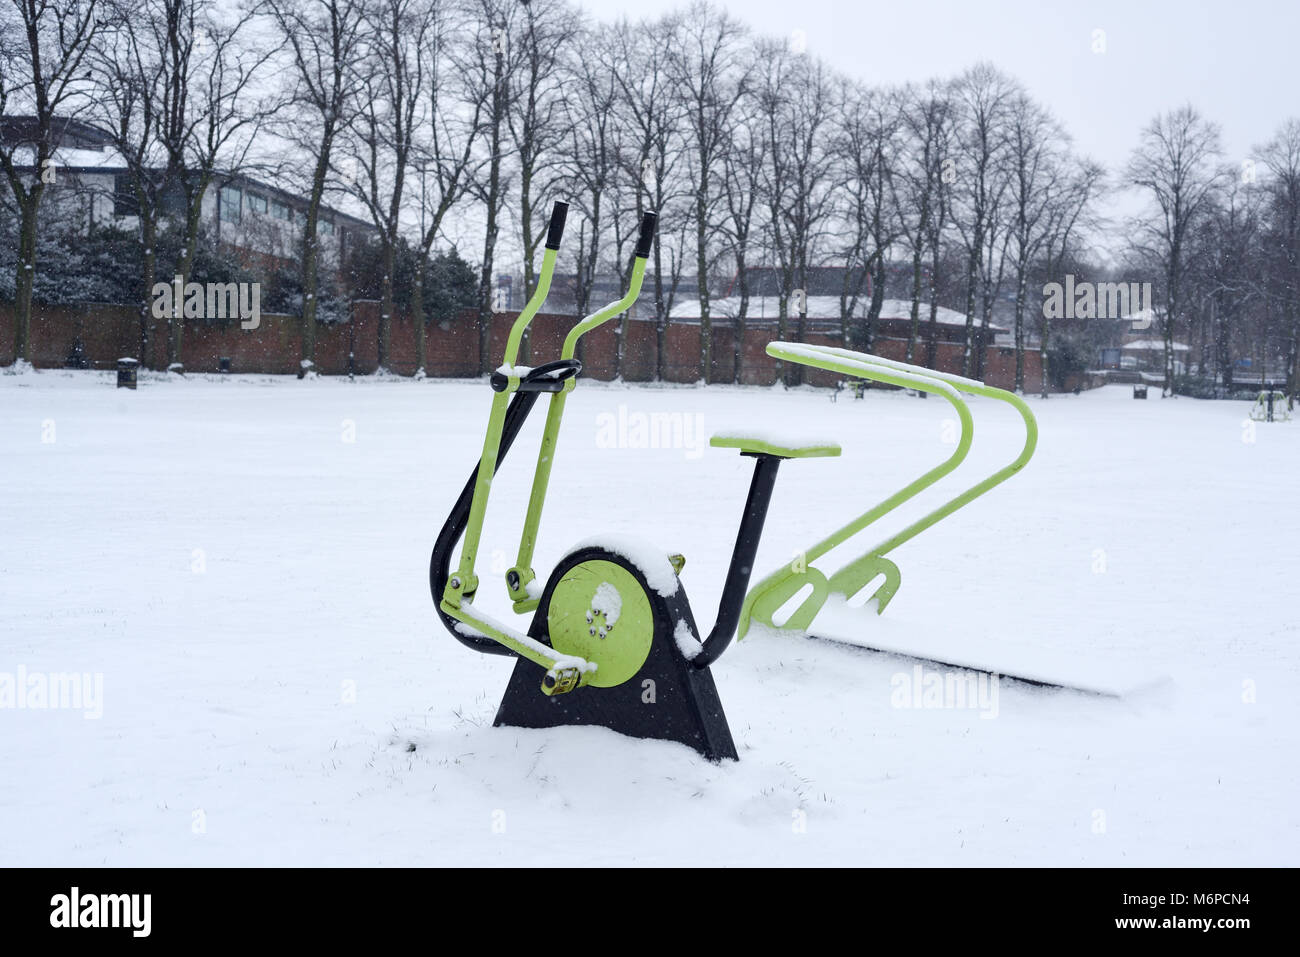 Exercise Equipment  in a public park covered in snow,UK. - Stock Image